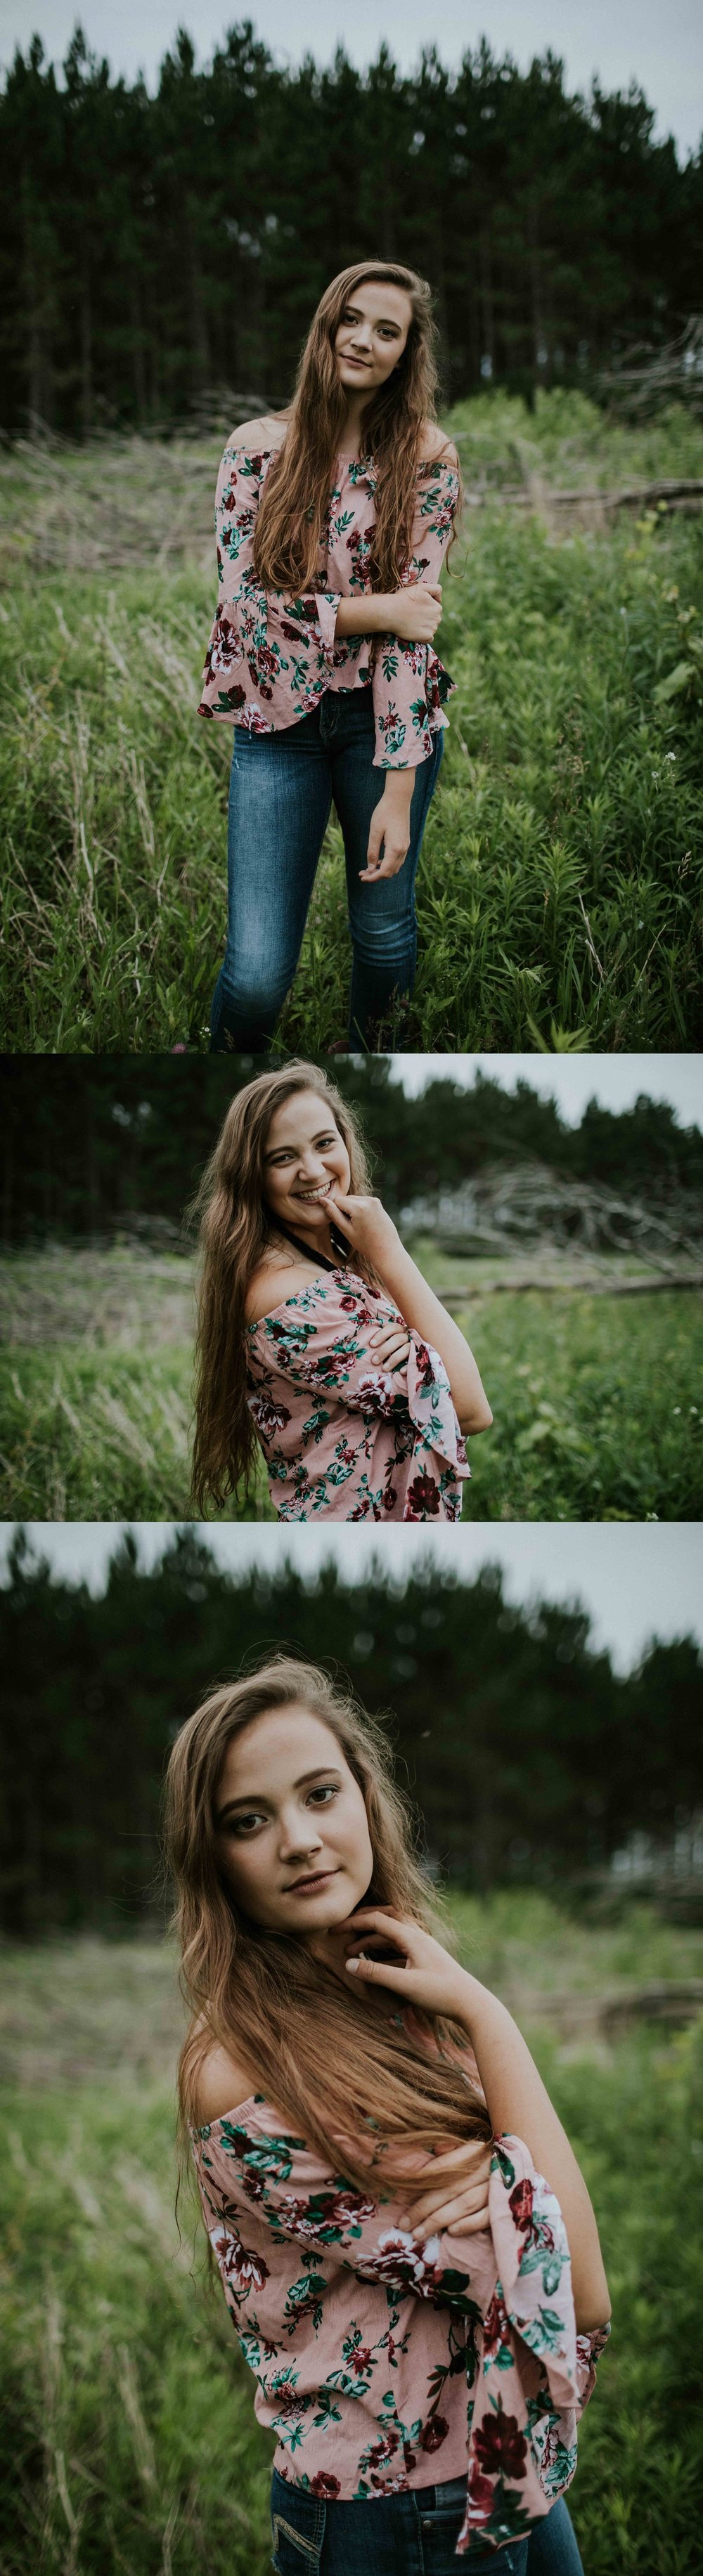 Wisconsin Senior Photographer Wisconsin Rapids Madison Chloe Ann Photography_0009.jpg